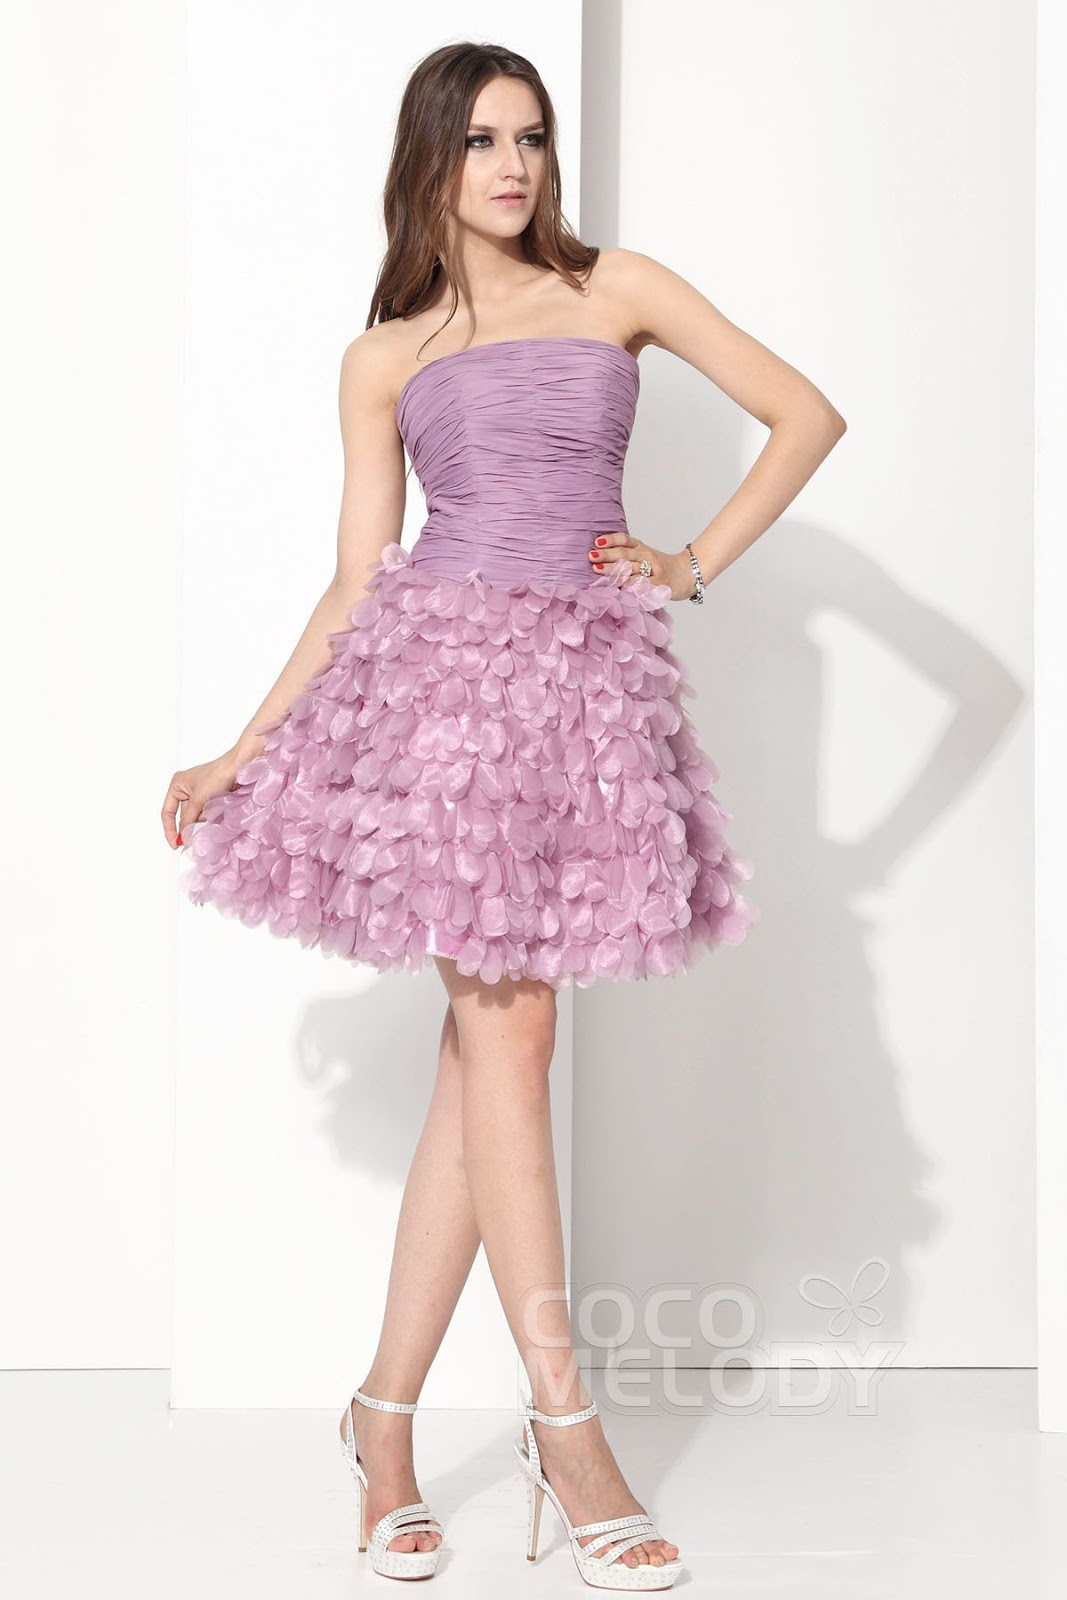 Silver Lining: Homecoming dresses from CocoMelody.com